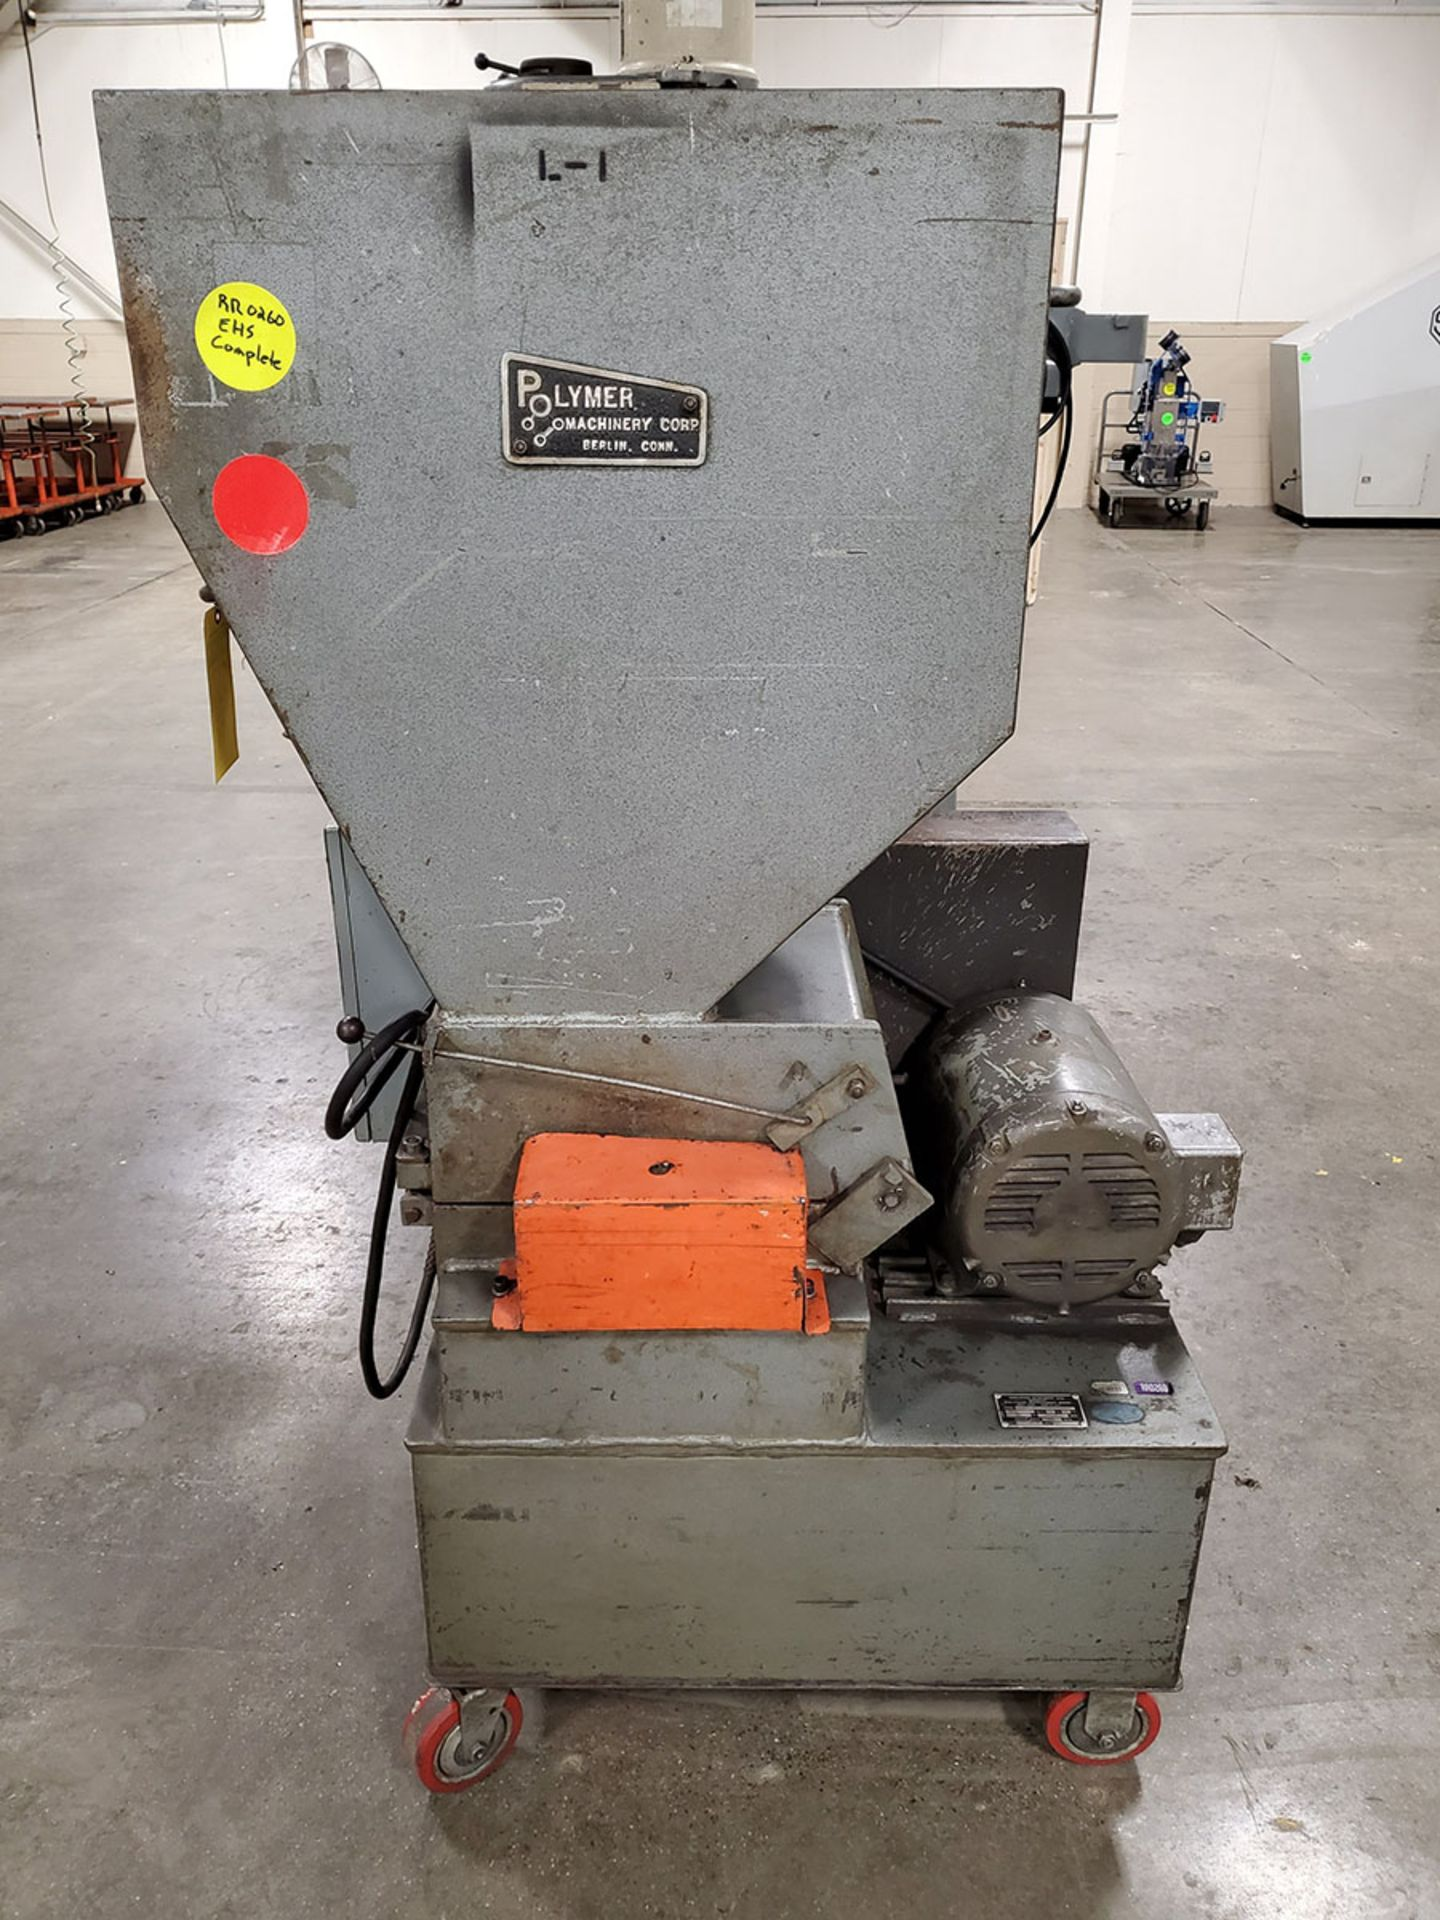 Lot 191 - POLYMER POLY GRINDER; MODEL 912SPL, S/N 91228779SPL, 3-PHASE, 10-HP